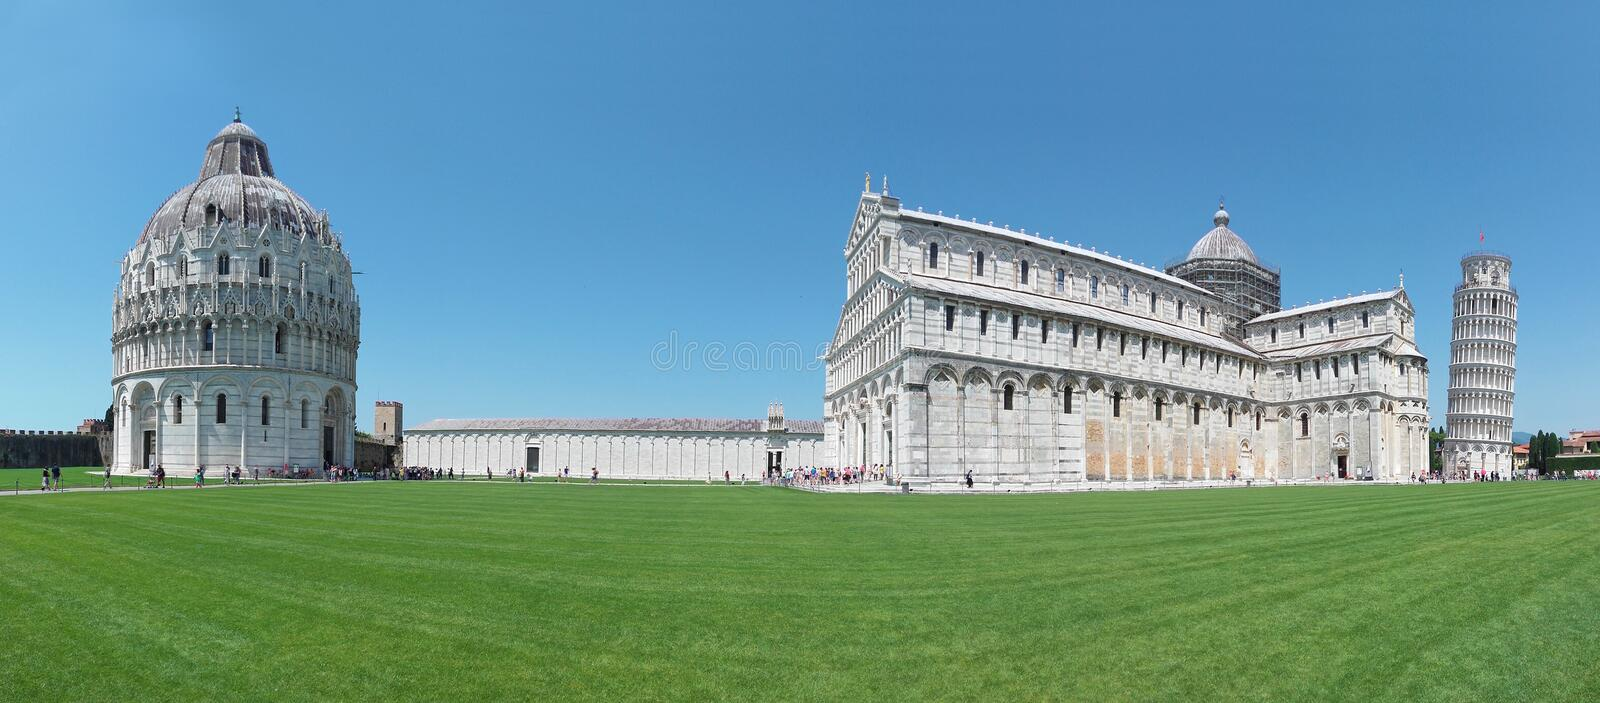 Pisa, Tuscany, Italy. Leaning Tower of Pisa, Piazza del Duomo. royalty free stock image